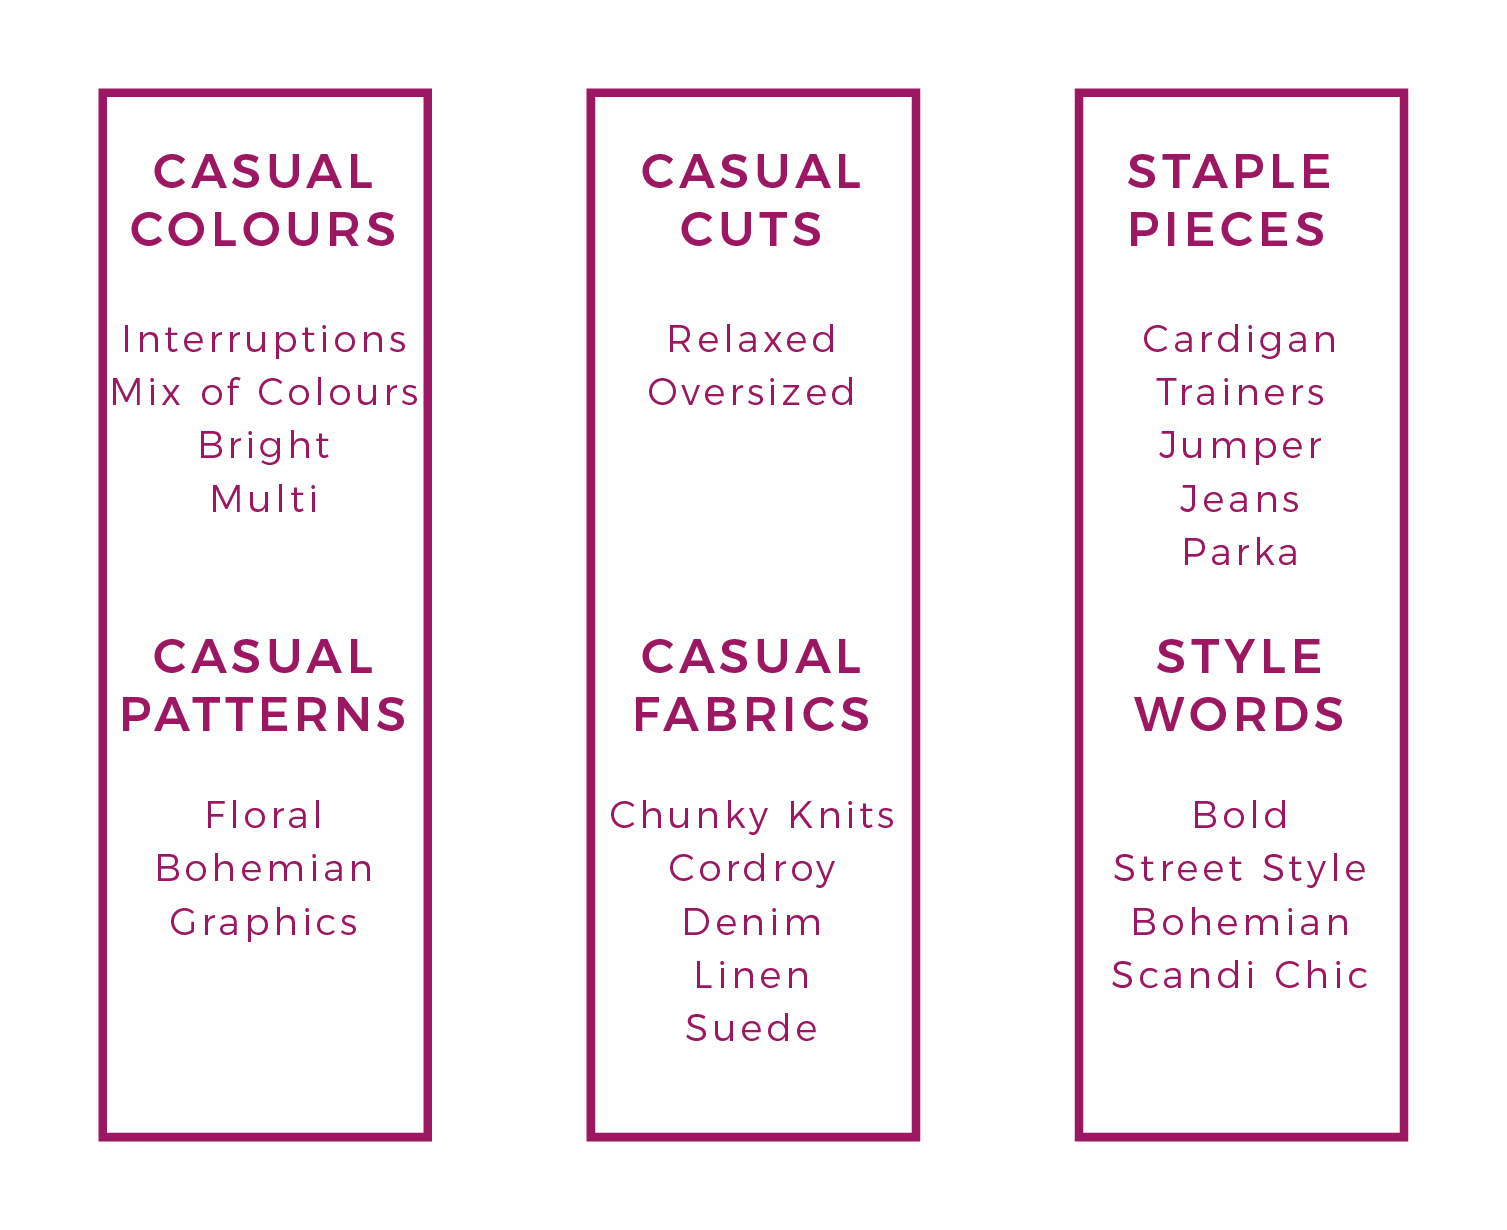 style-scale-casual-elements